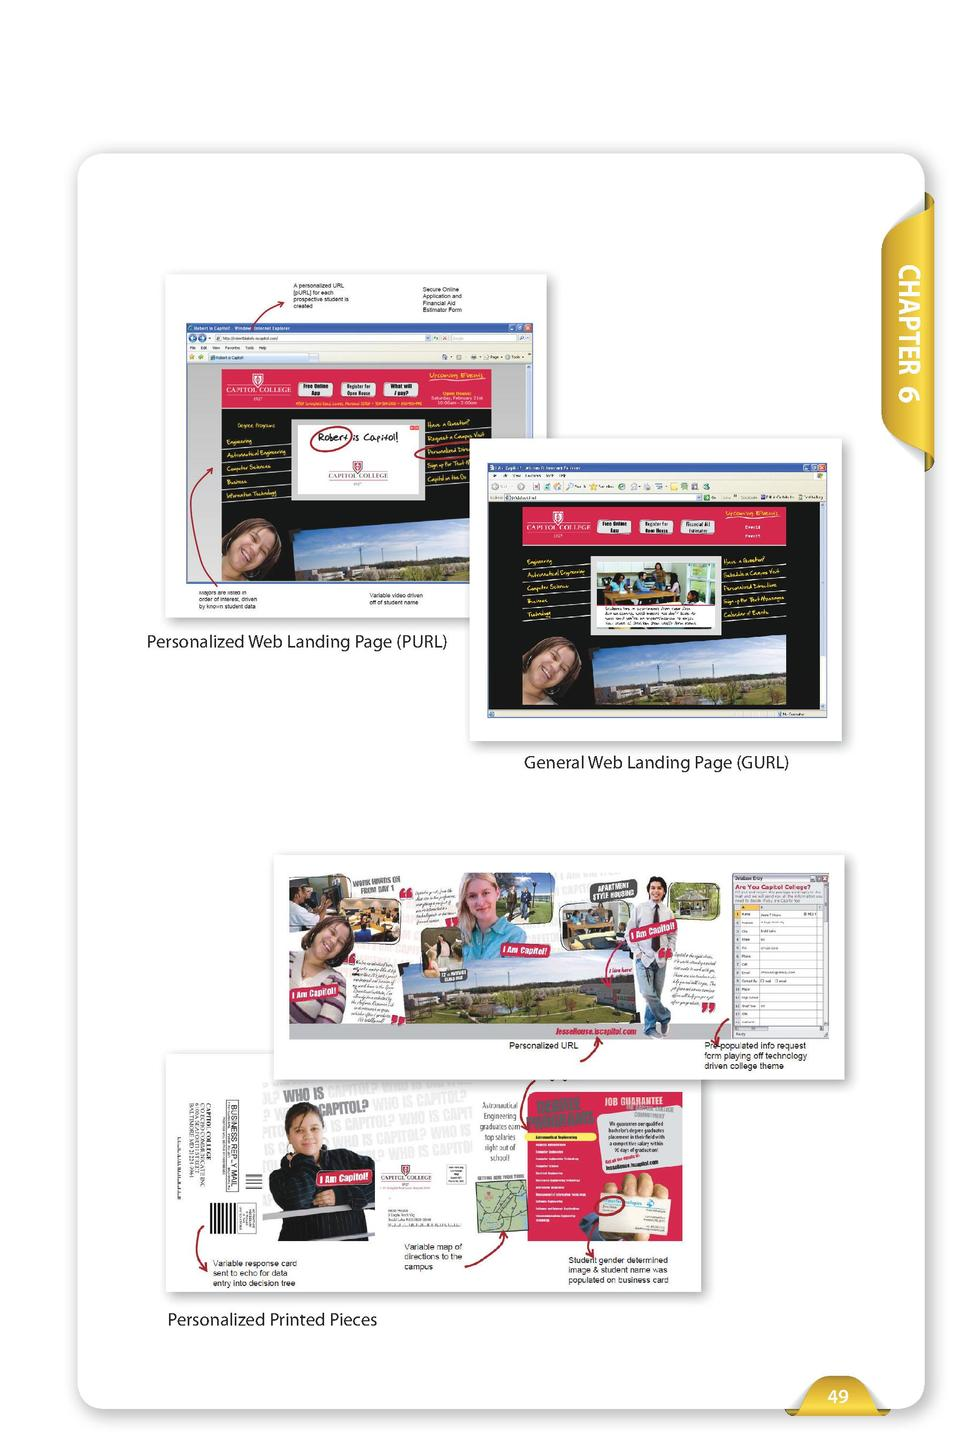 CHAPTER 6  Personalized Web Landing Page  PURL   General Web Landing Page  GURL   Personalized Printed Pieces  49